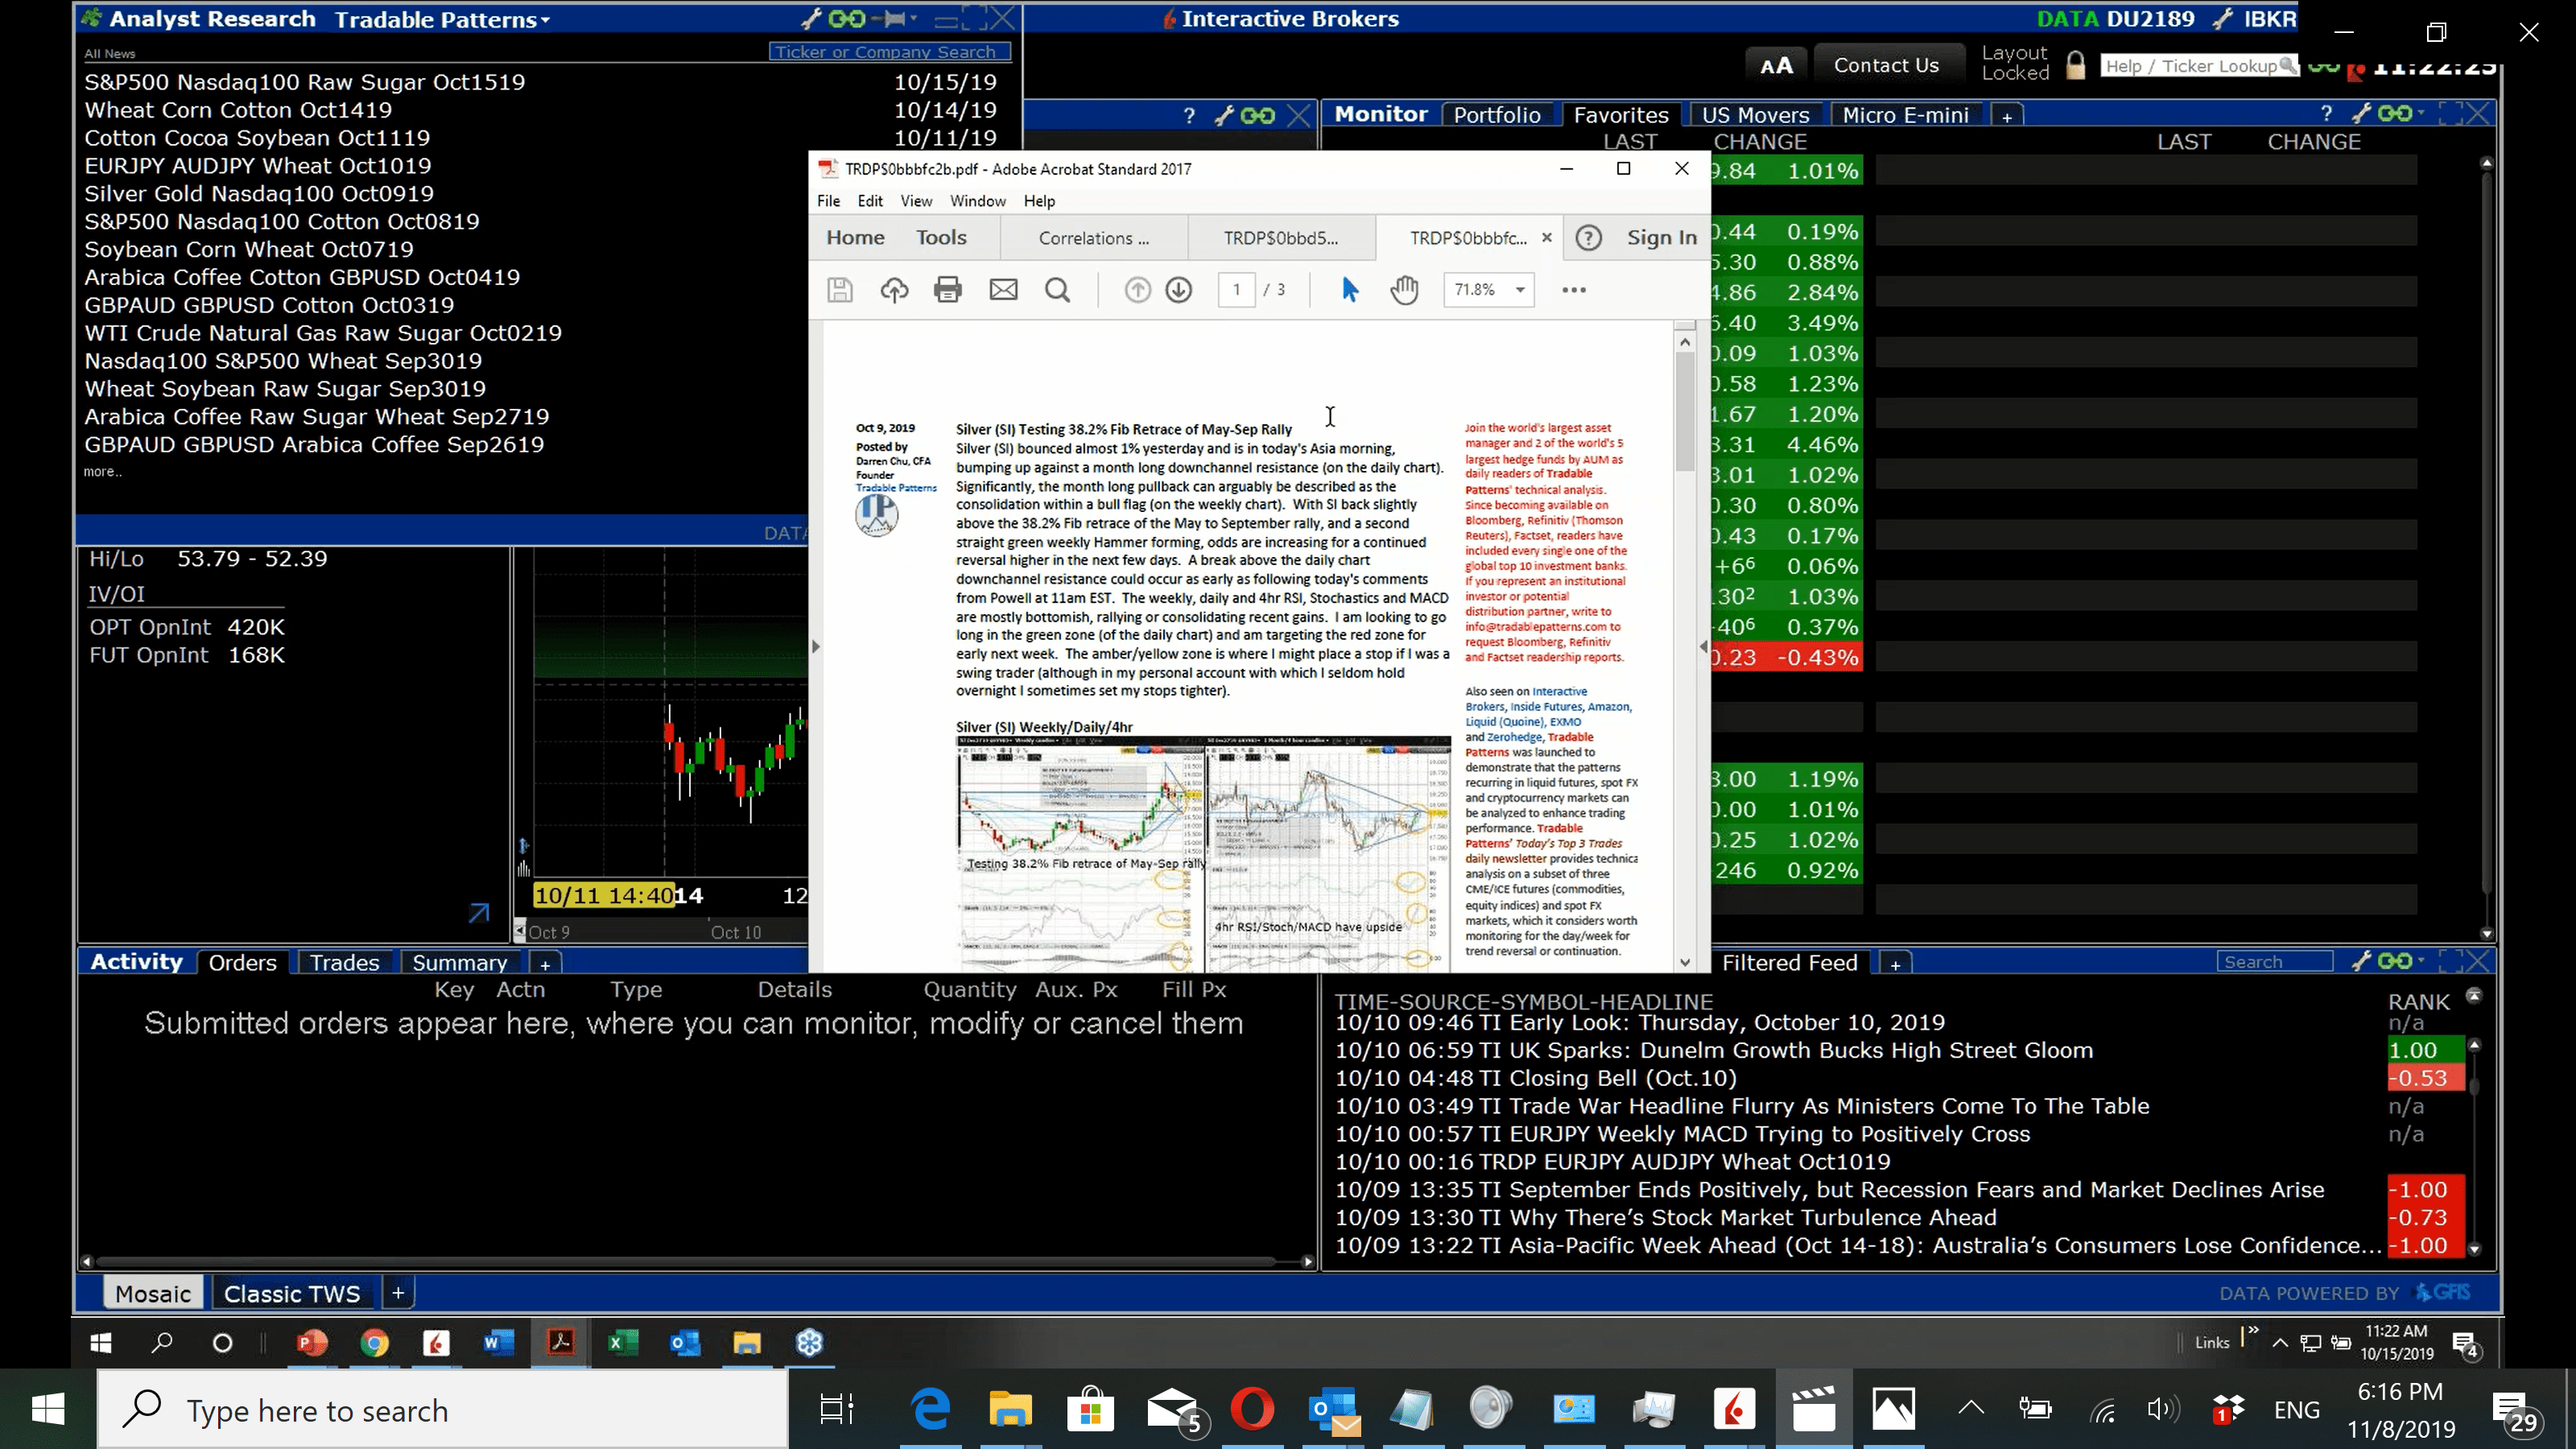 IB TWS - subscribing to Tradable Patterns